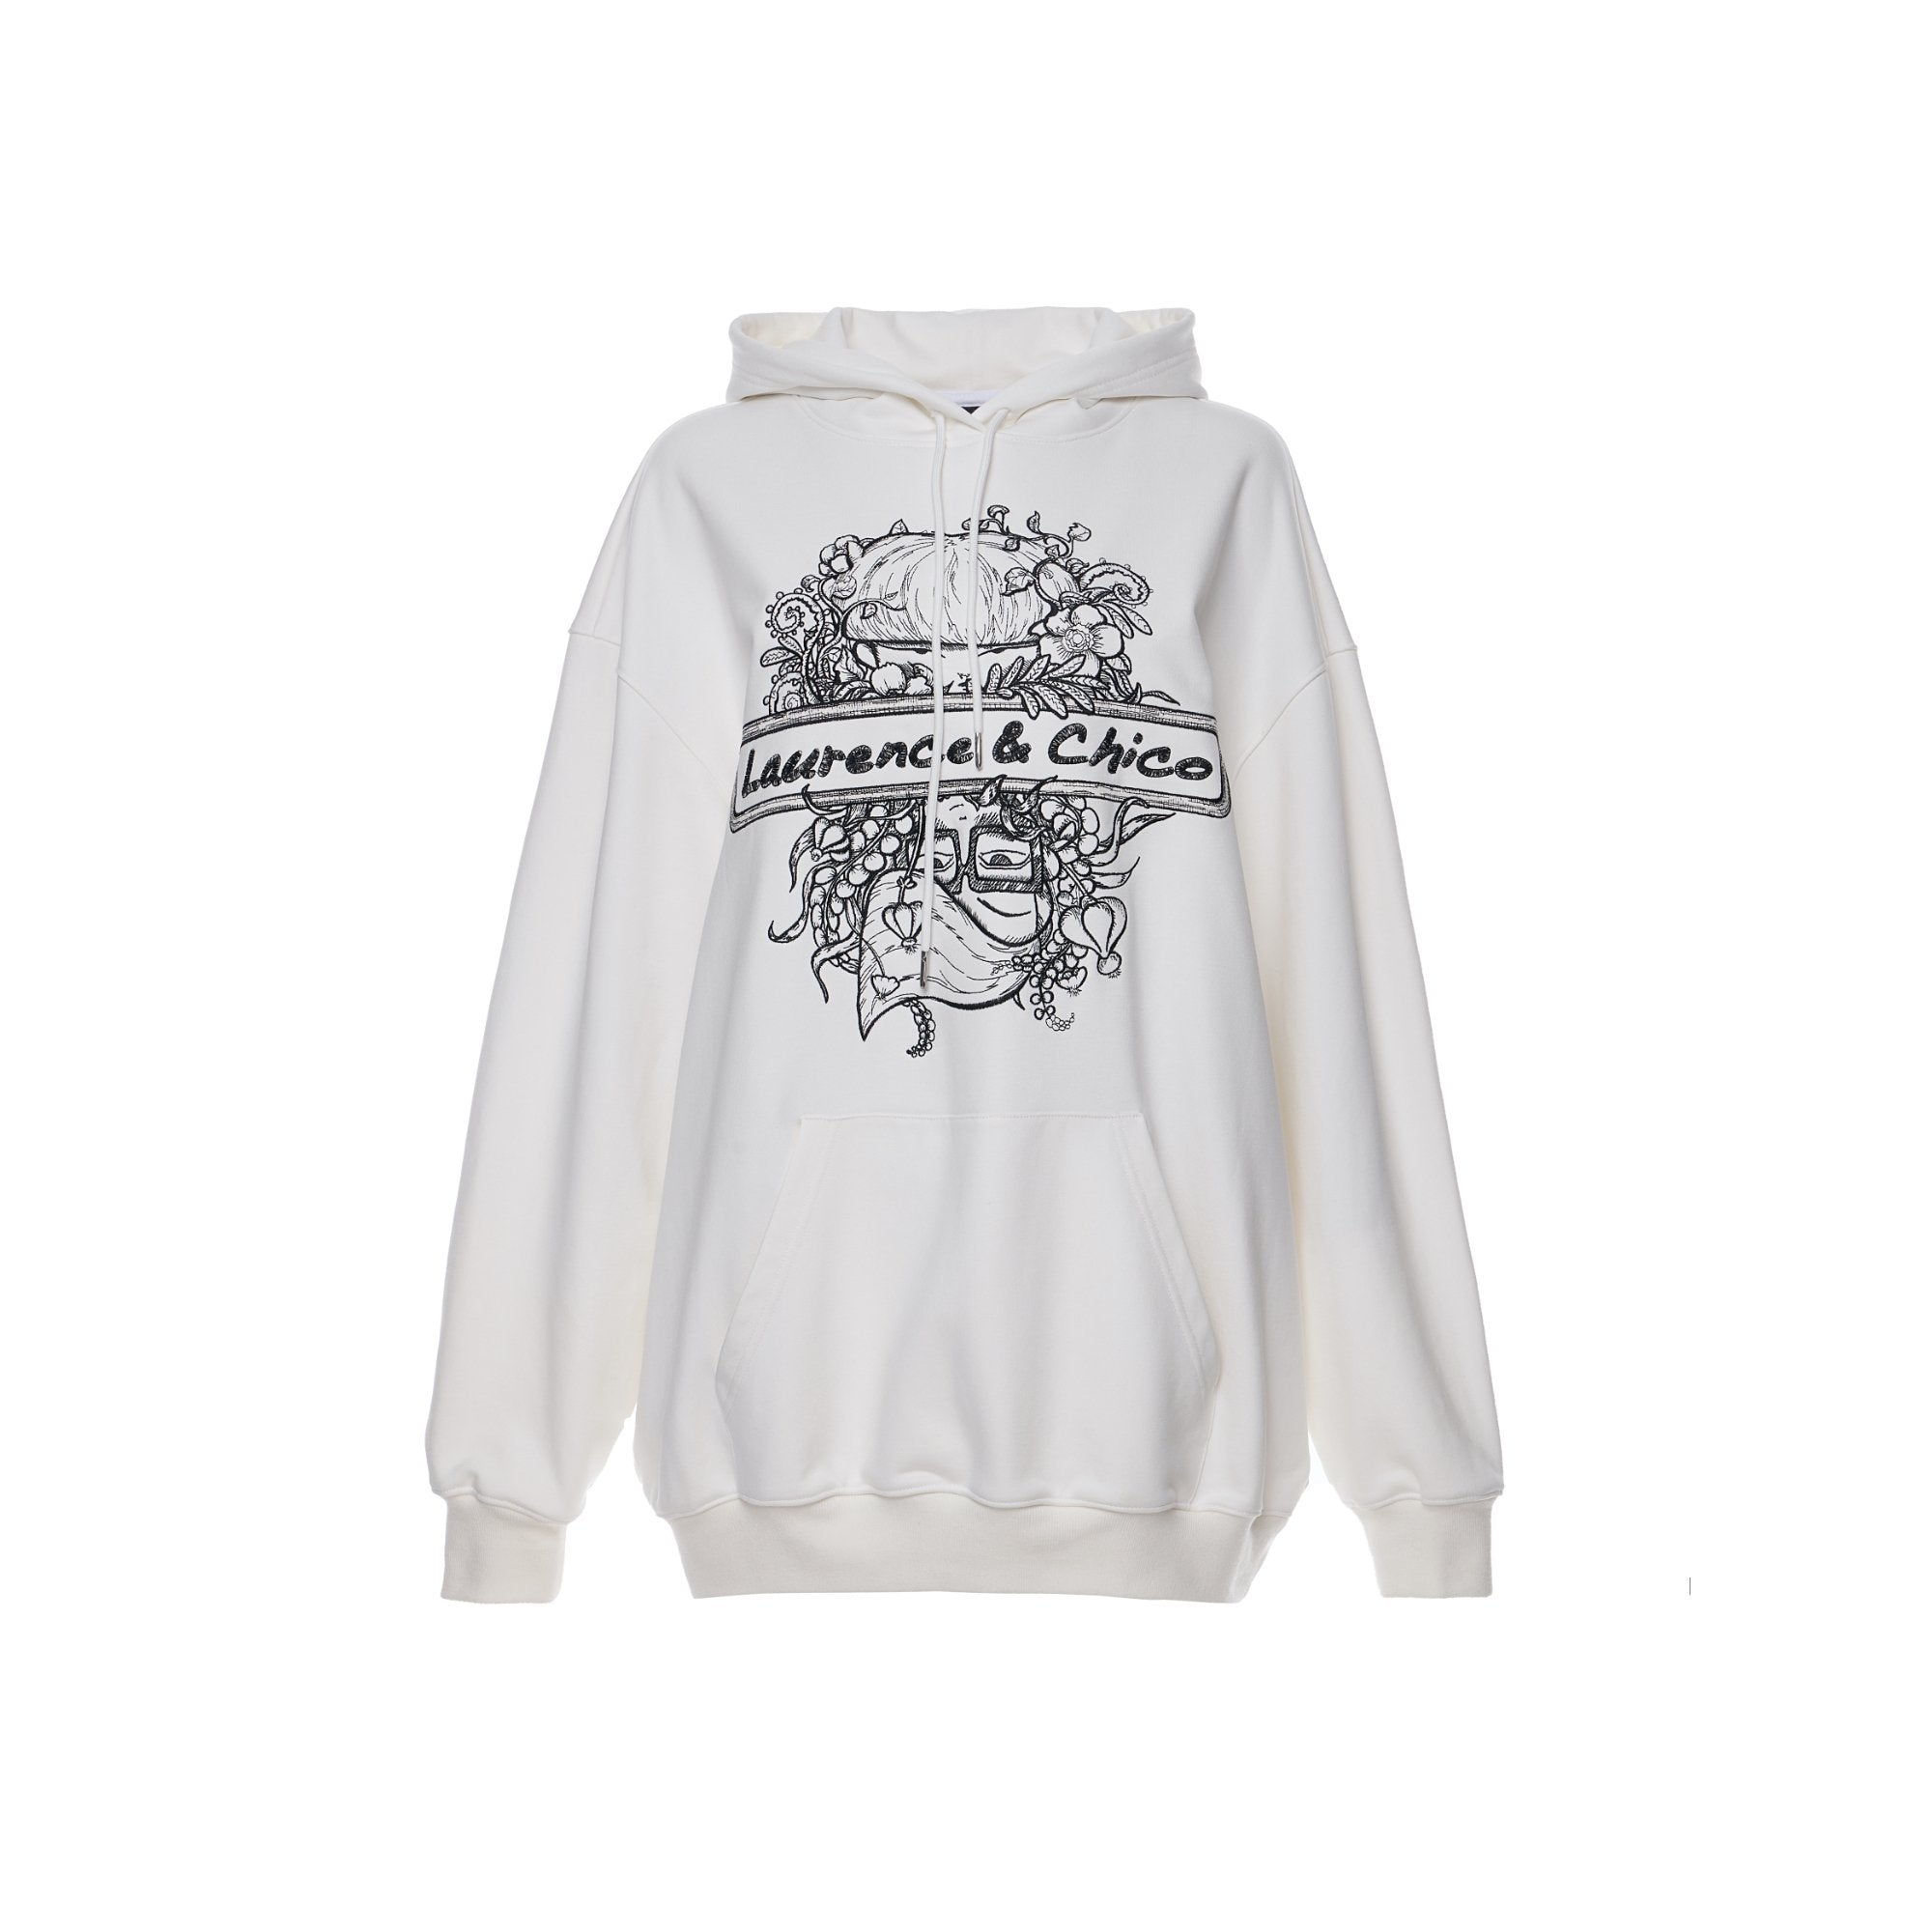 Laurence & Chico Portrait Embroidery Hoodie White | MADA IN CHINA